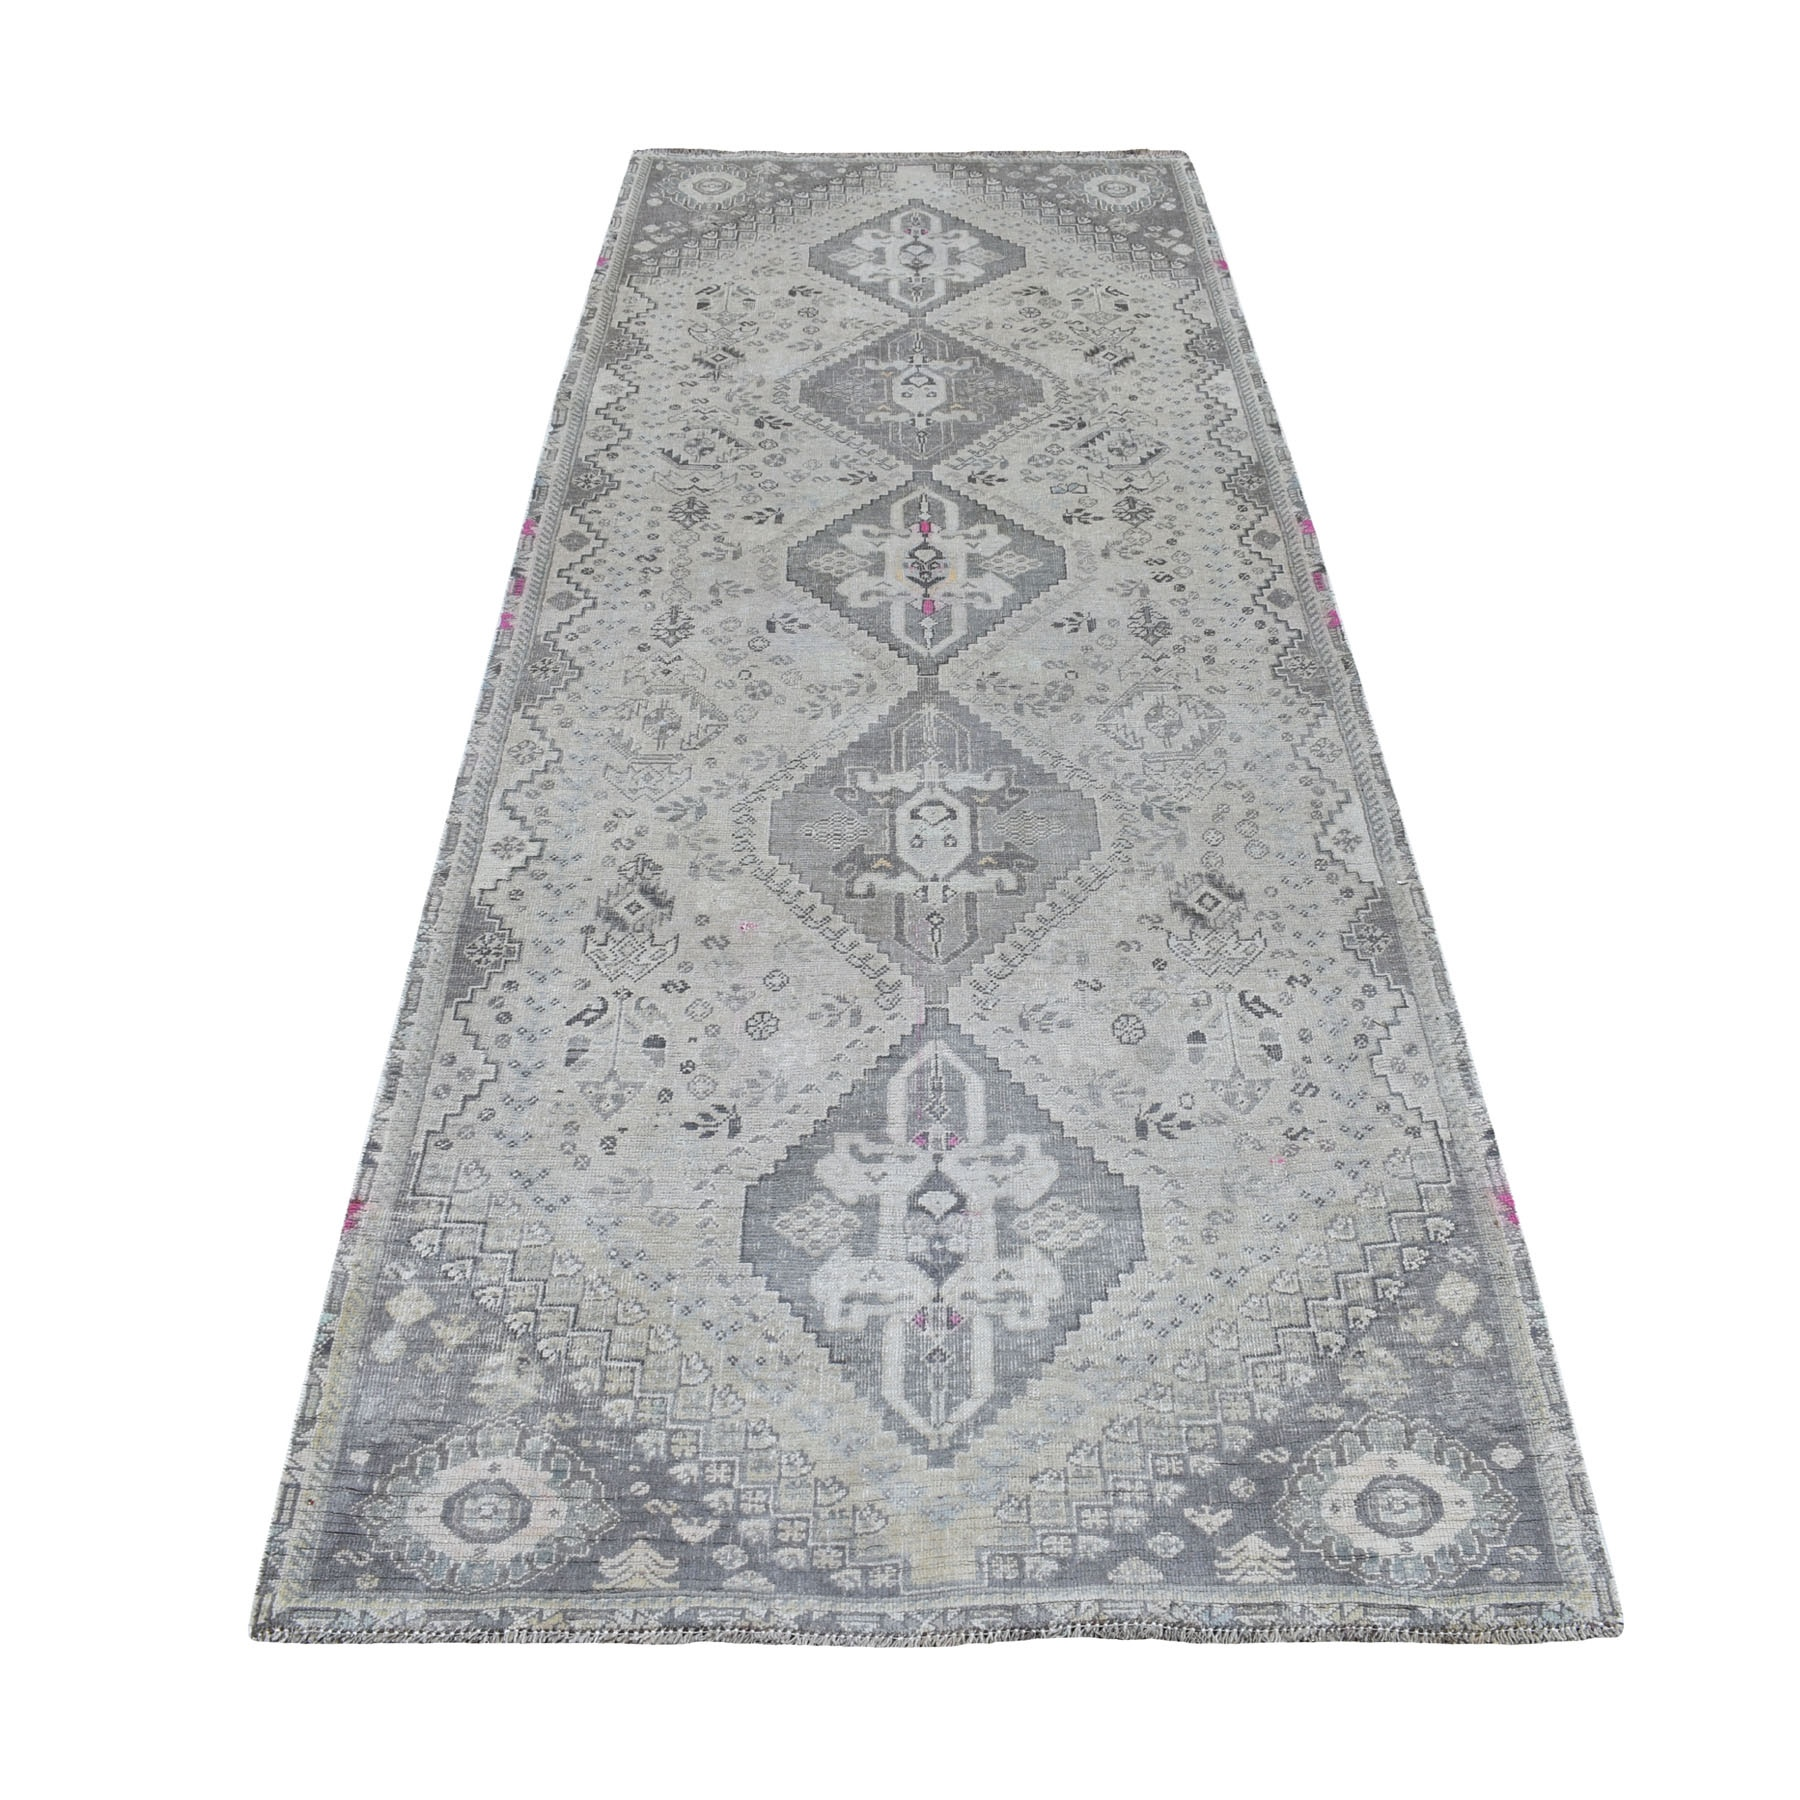 "3'8""X9' Vintage And Worn Down Distressed Colors Persian Qashqai Wide Runner Hand Knotted Bohemian Rug moaed086"